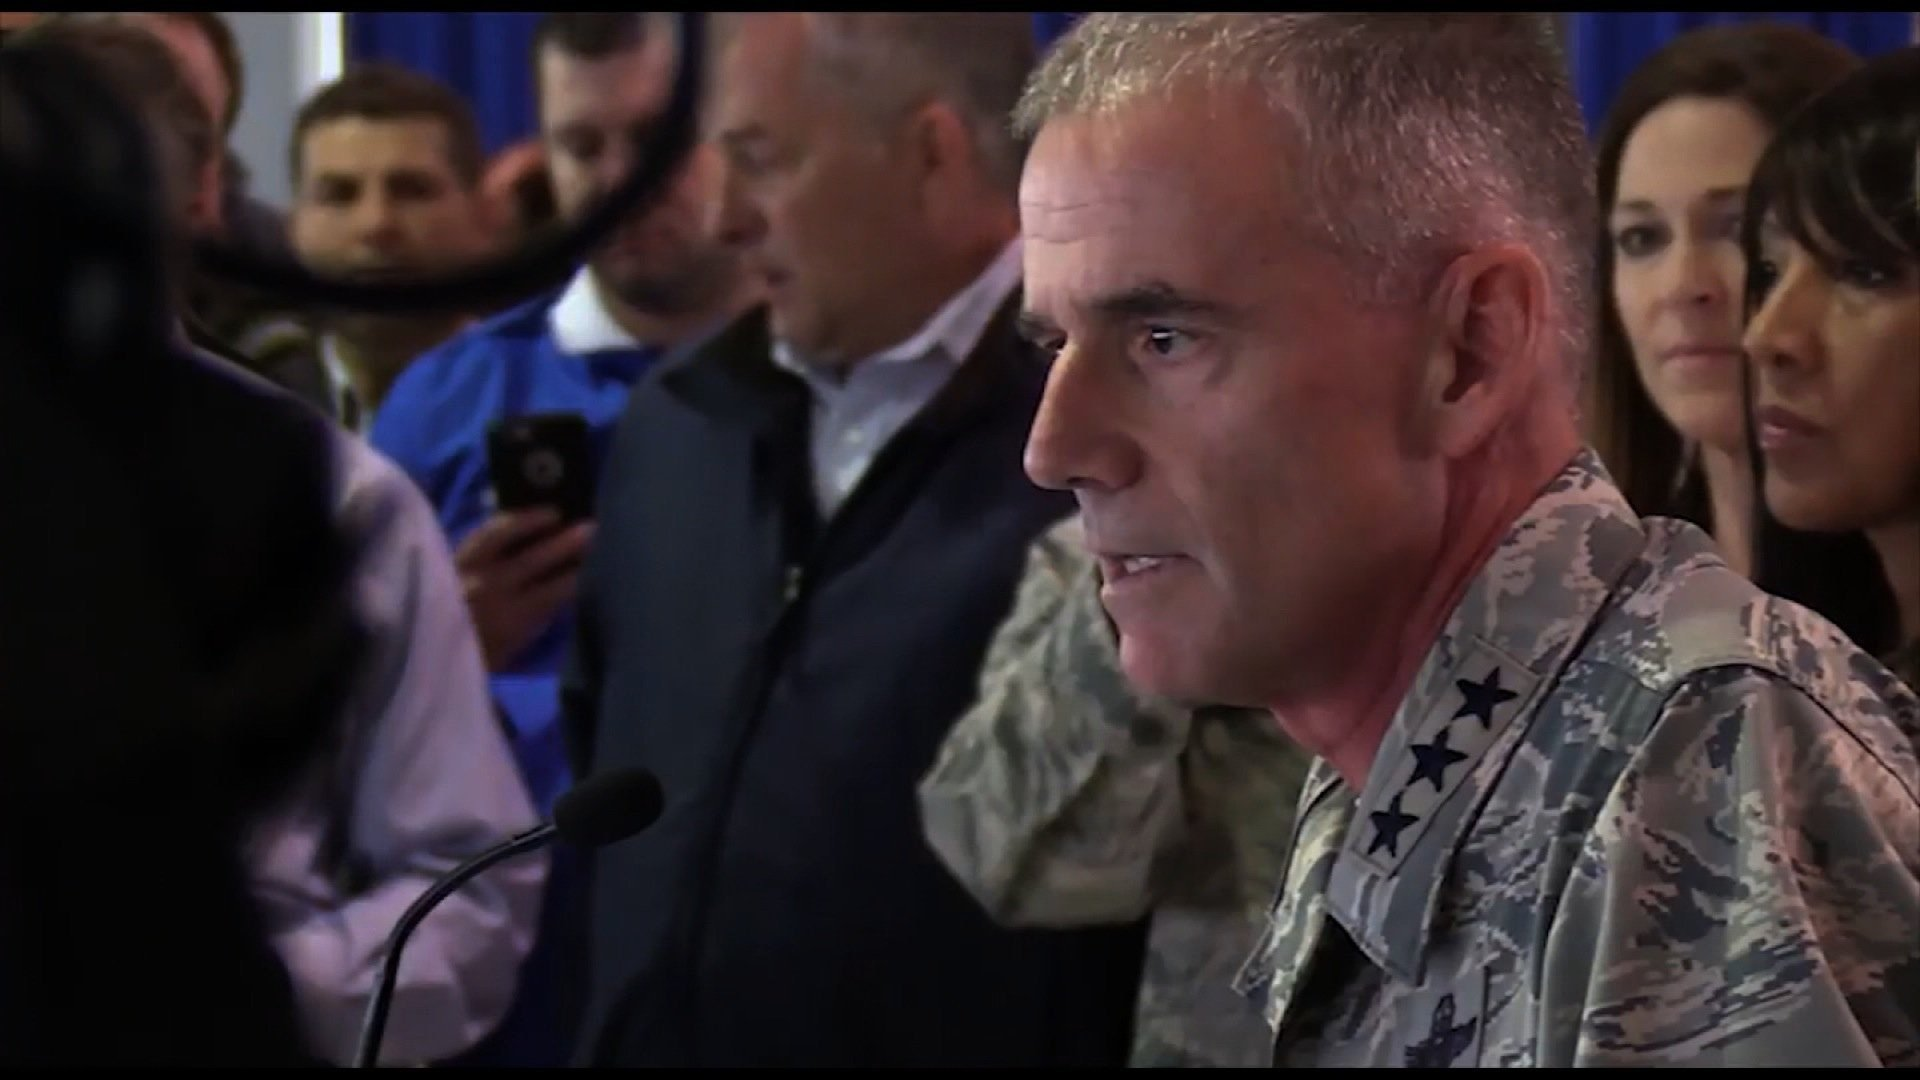 Lt. Gen.Jay Silveria expressed outrage after racist slurs were found at the academy prep school. On Tuesday, Air Force Academy officials said that one of the black cadet candidates actually wrote the racist messages.